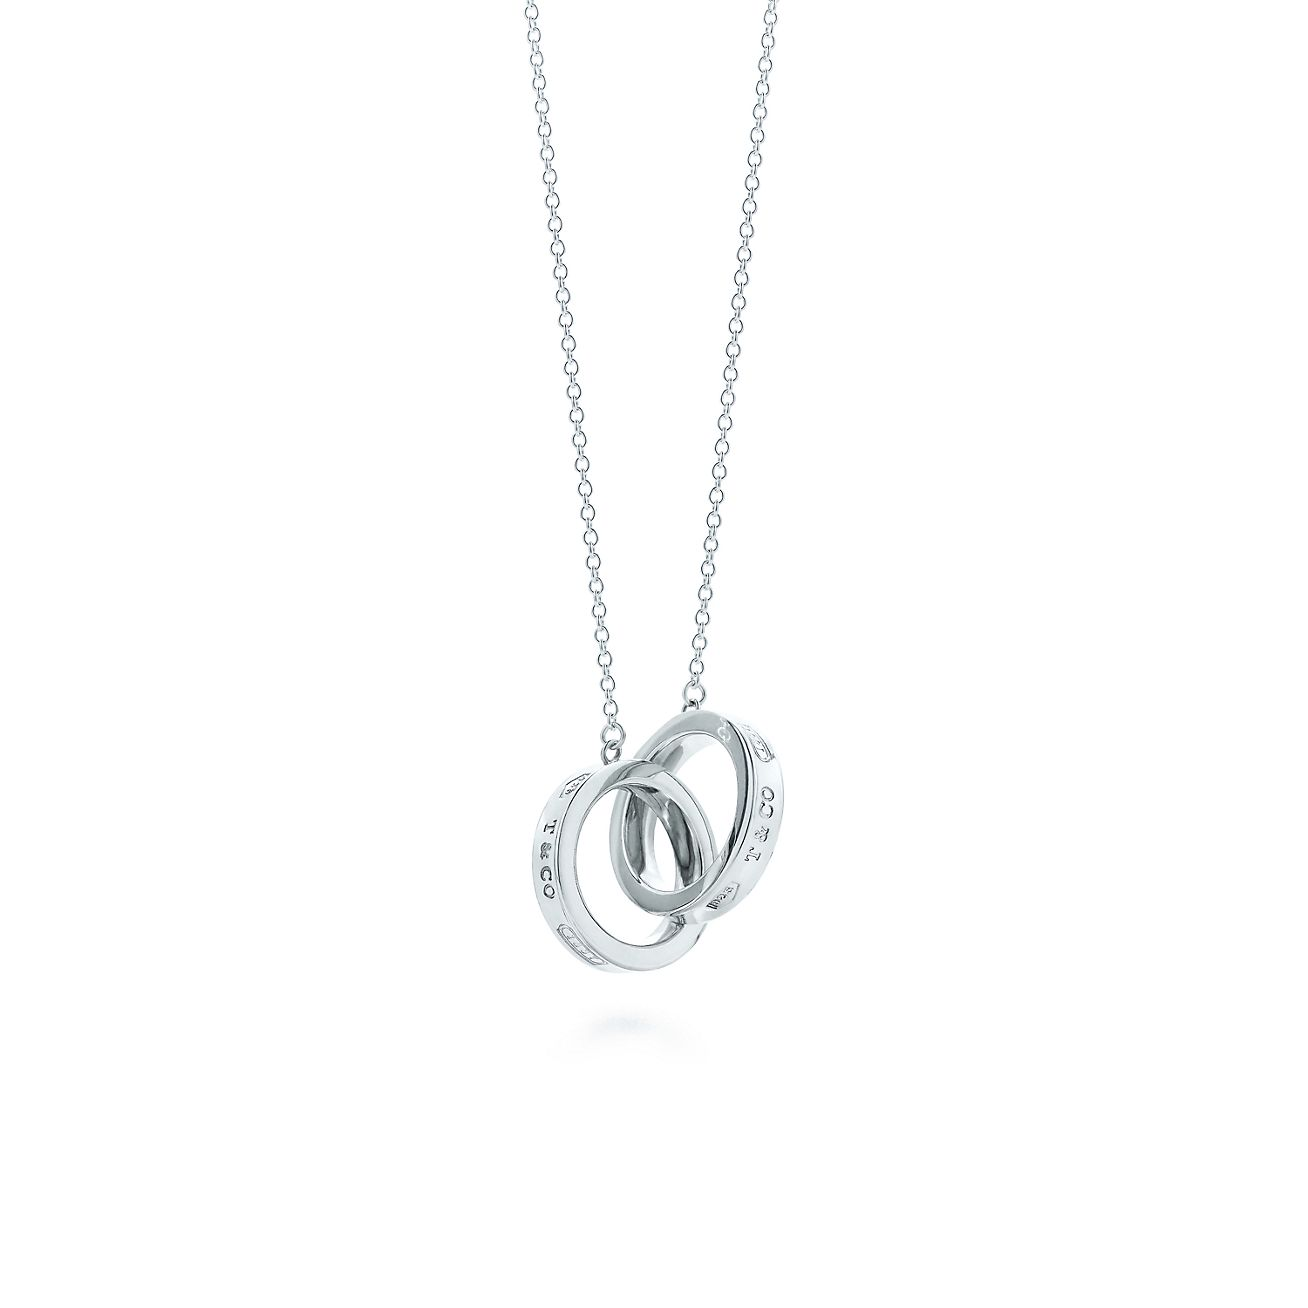 main rings phab necklace platinum at jewellery styles life latest designs articles detailmain